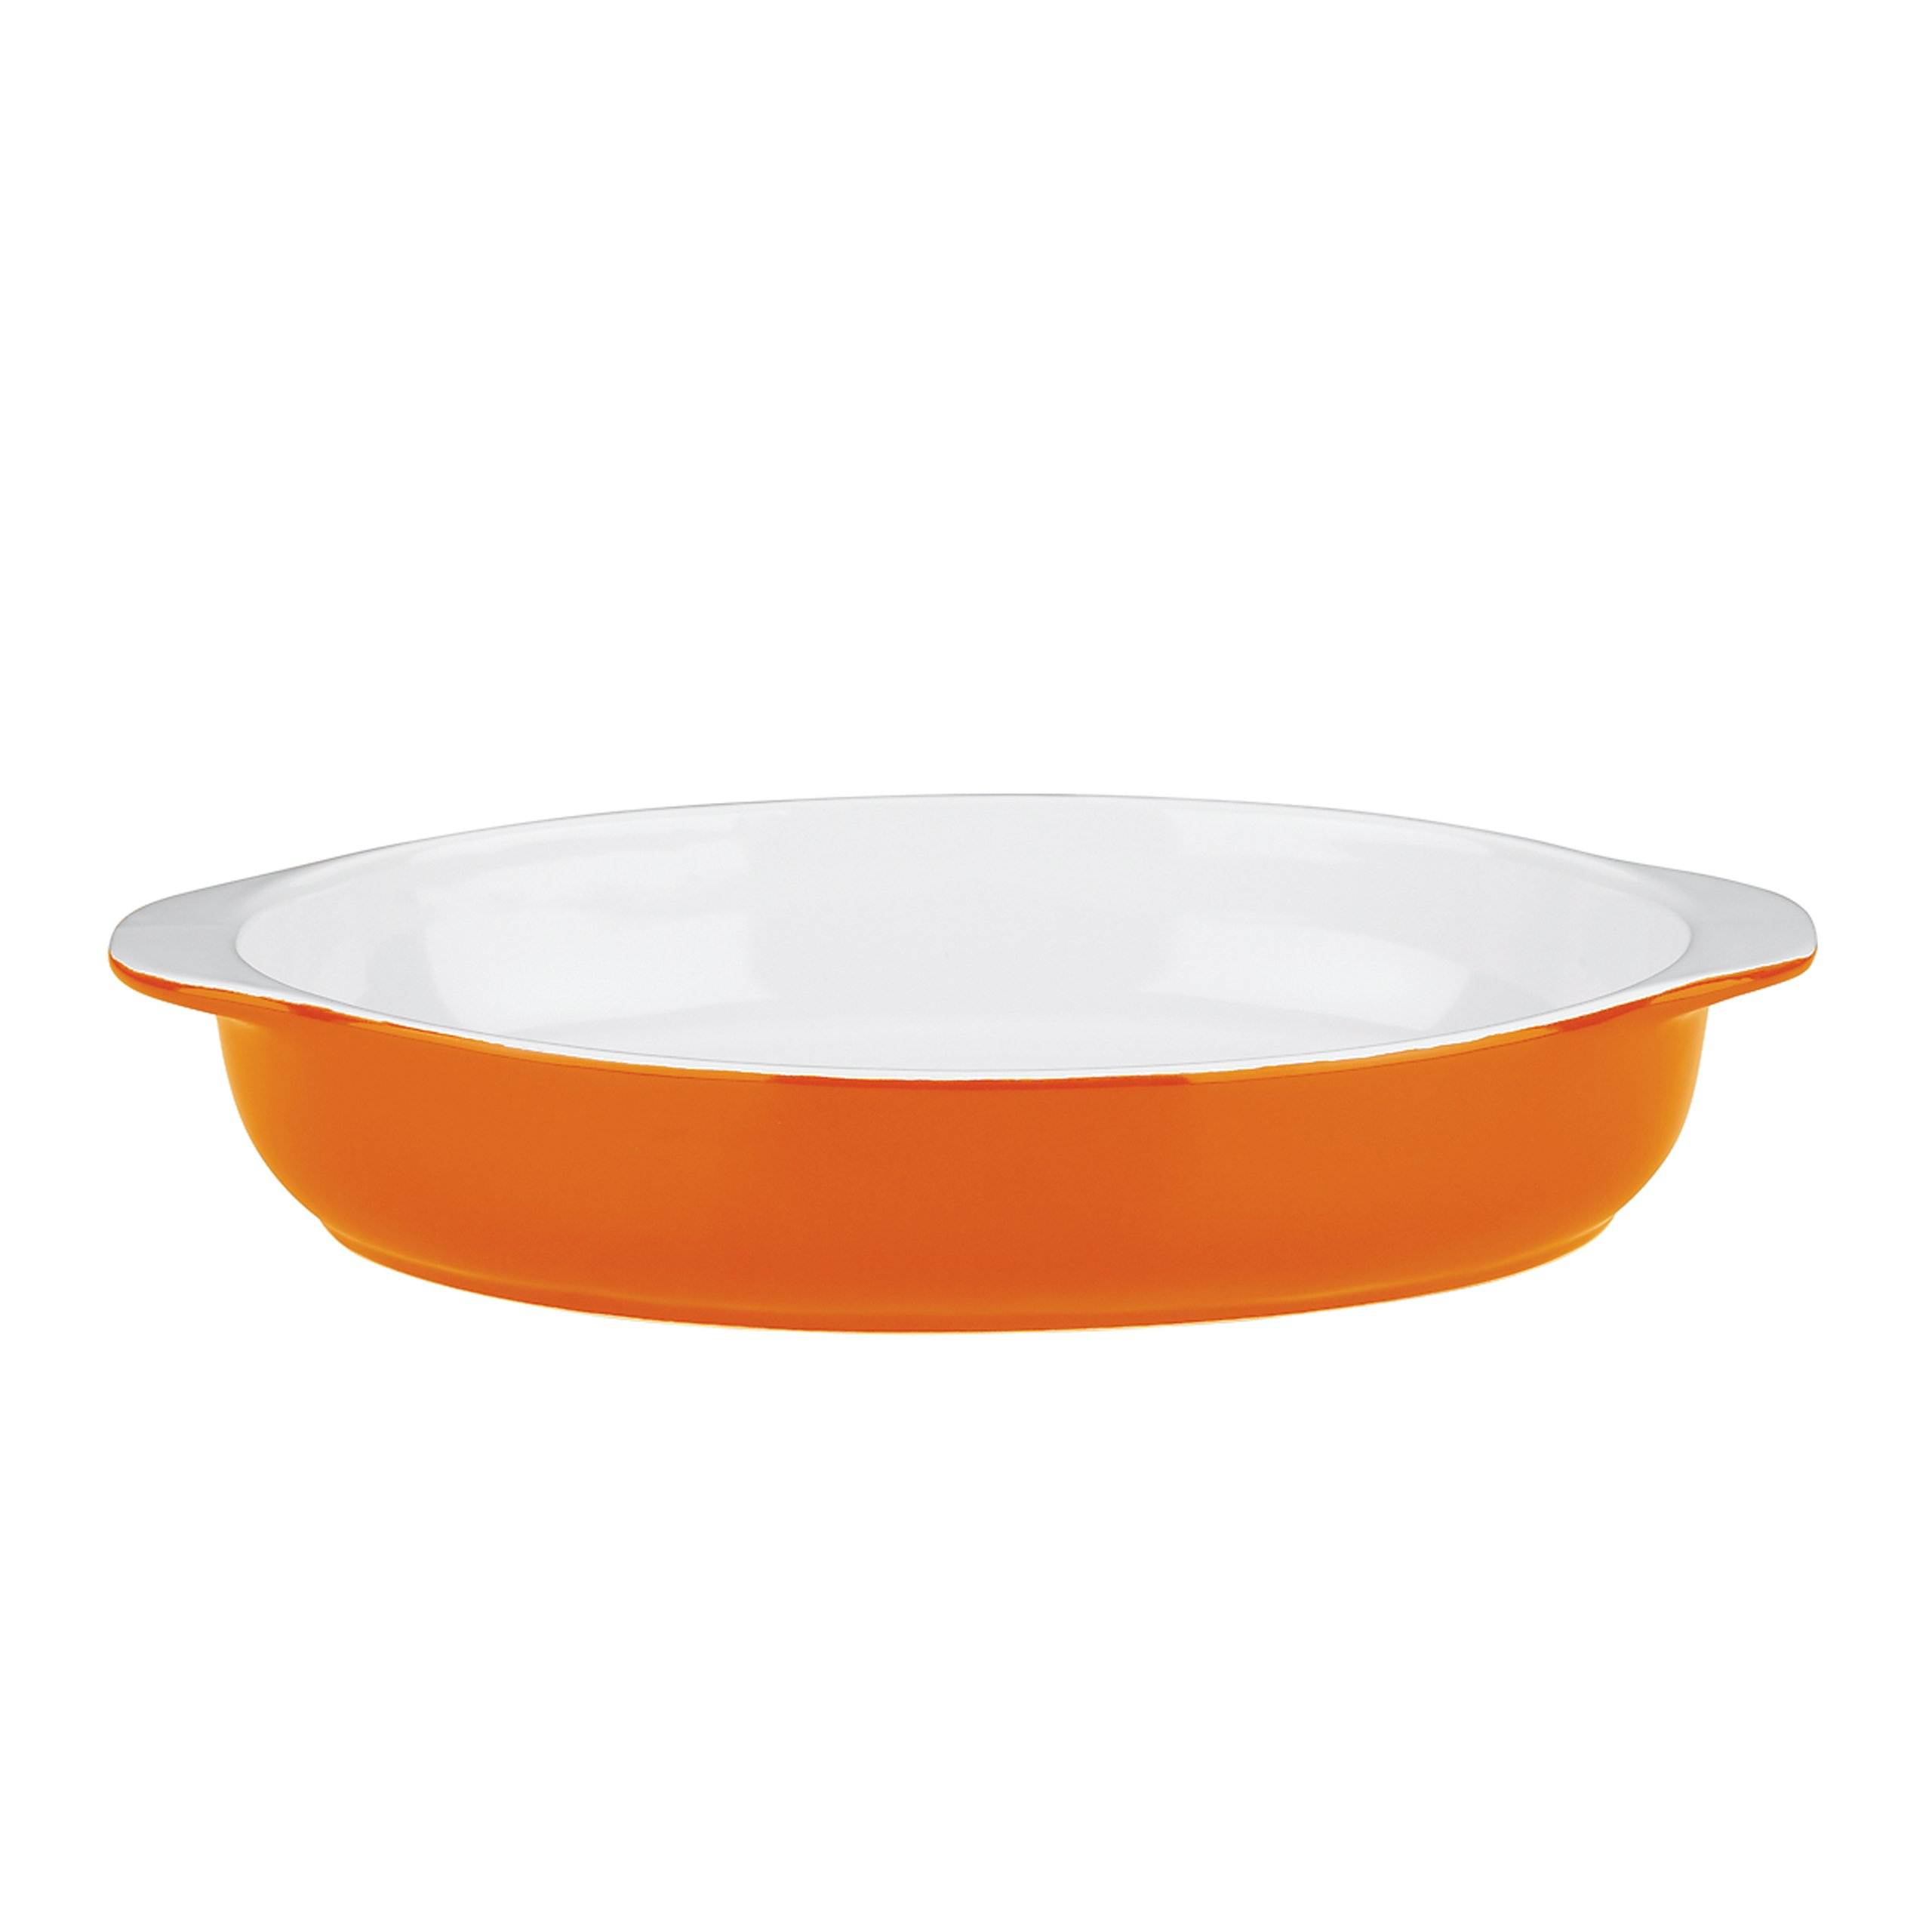 Mario Batali by Dansk 826882 Stoneware 11.5-Inch Oval Au Gratin, Large, Persimmon